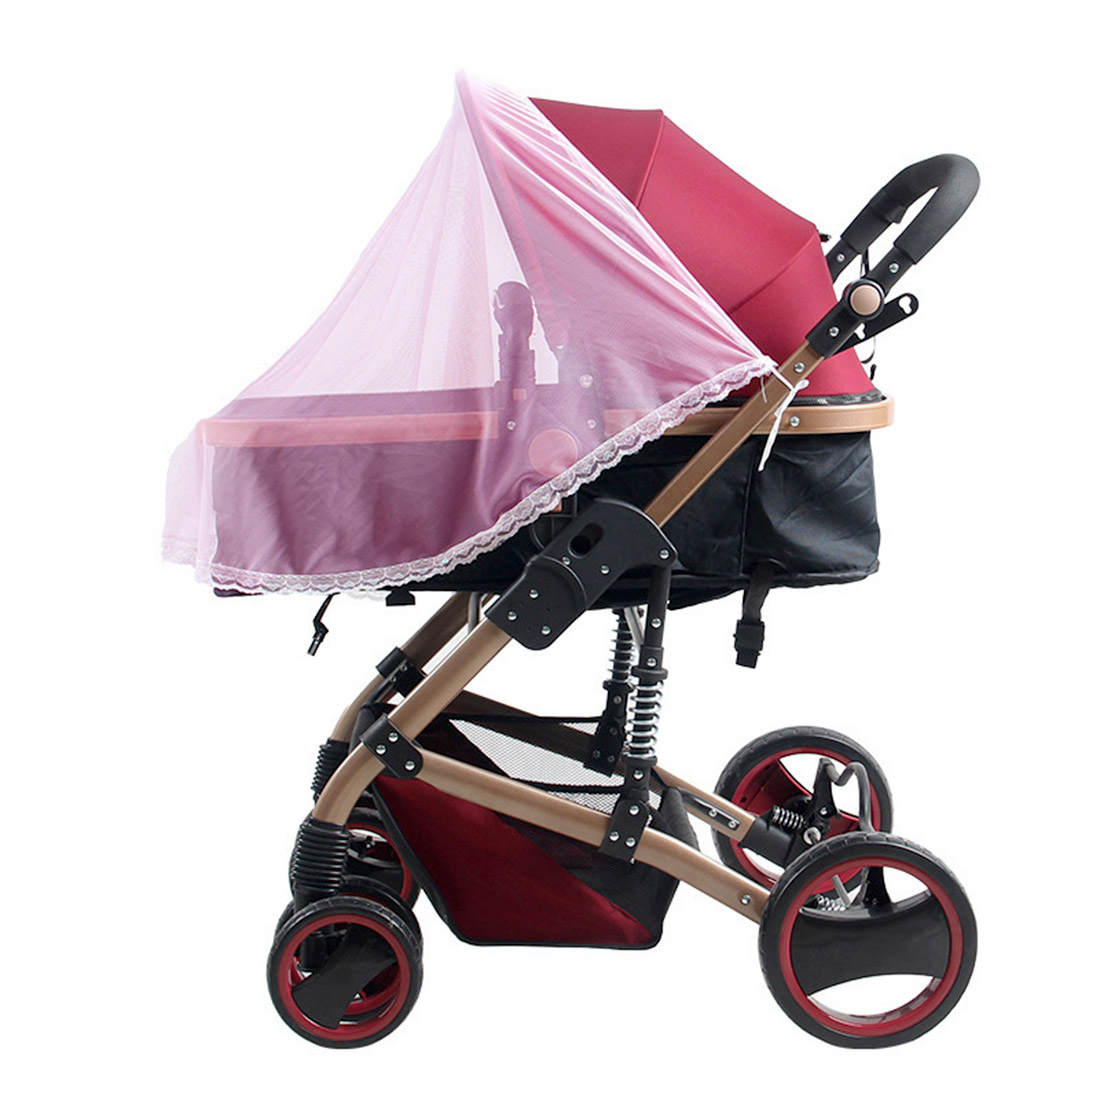 Universal Lace Mosquito and Insect Net for Baby Strollers Bassinets Cradles